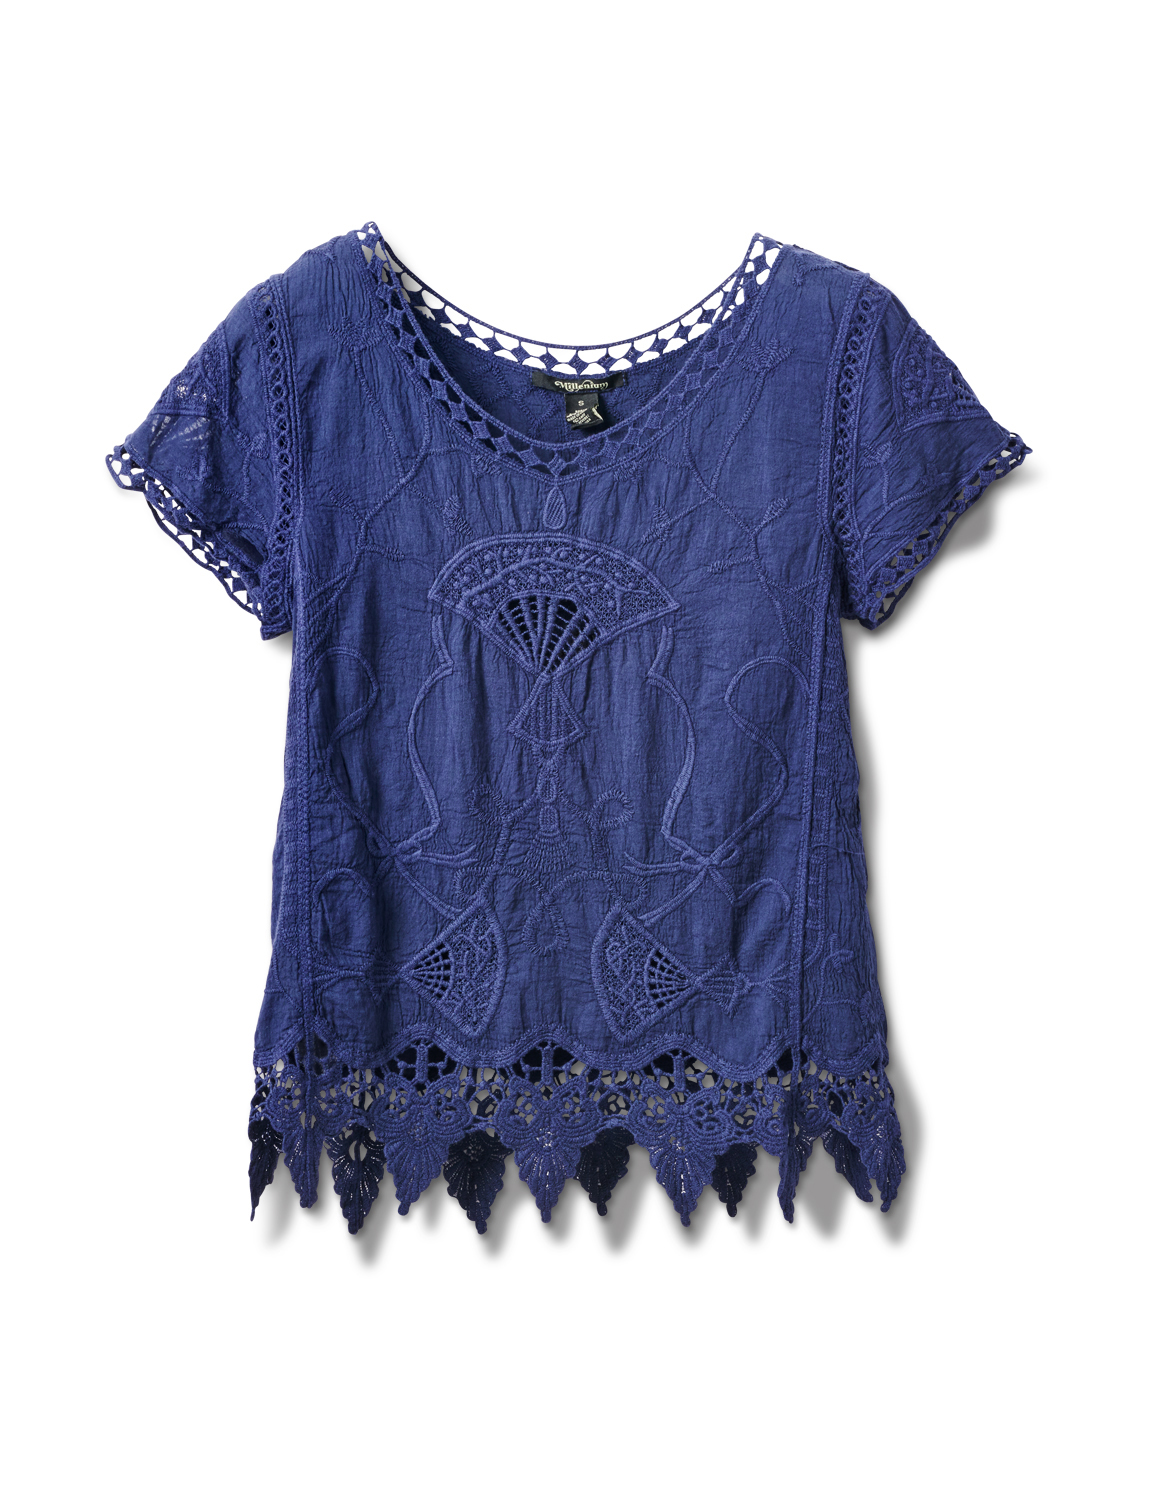 Embroidered Crochet Trim Blouse -Navy Blue - Front